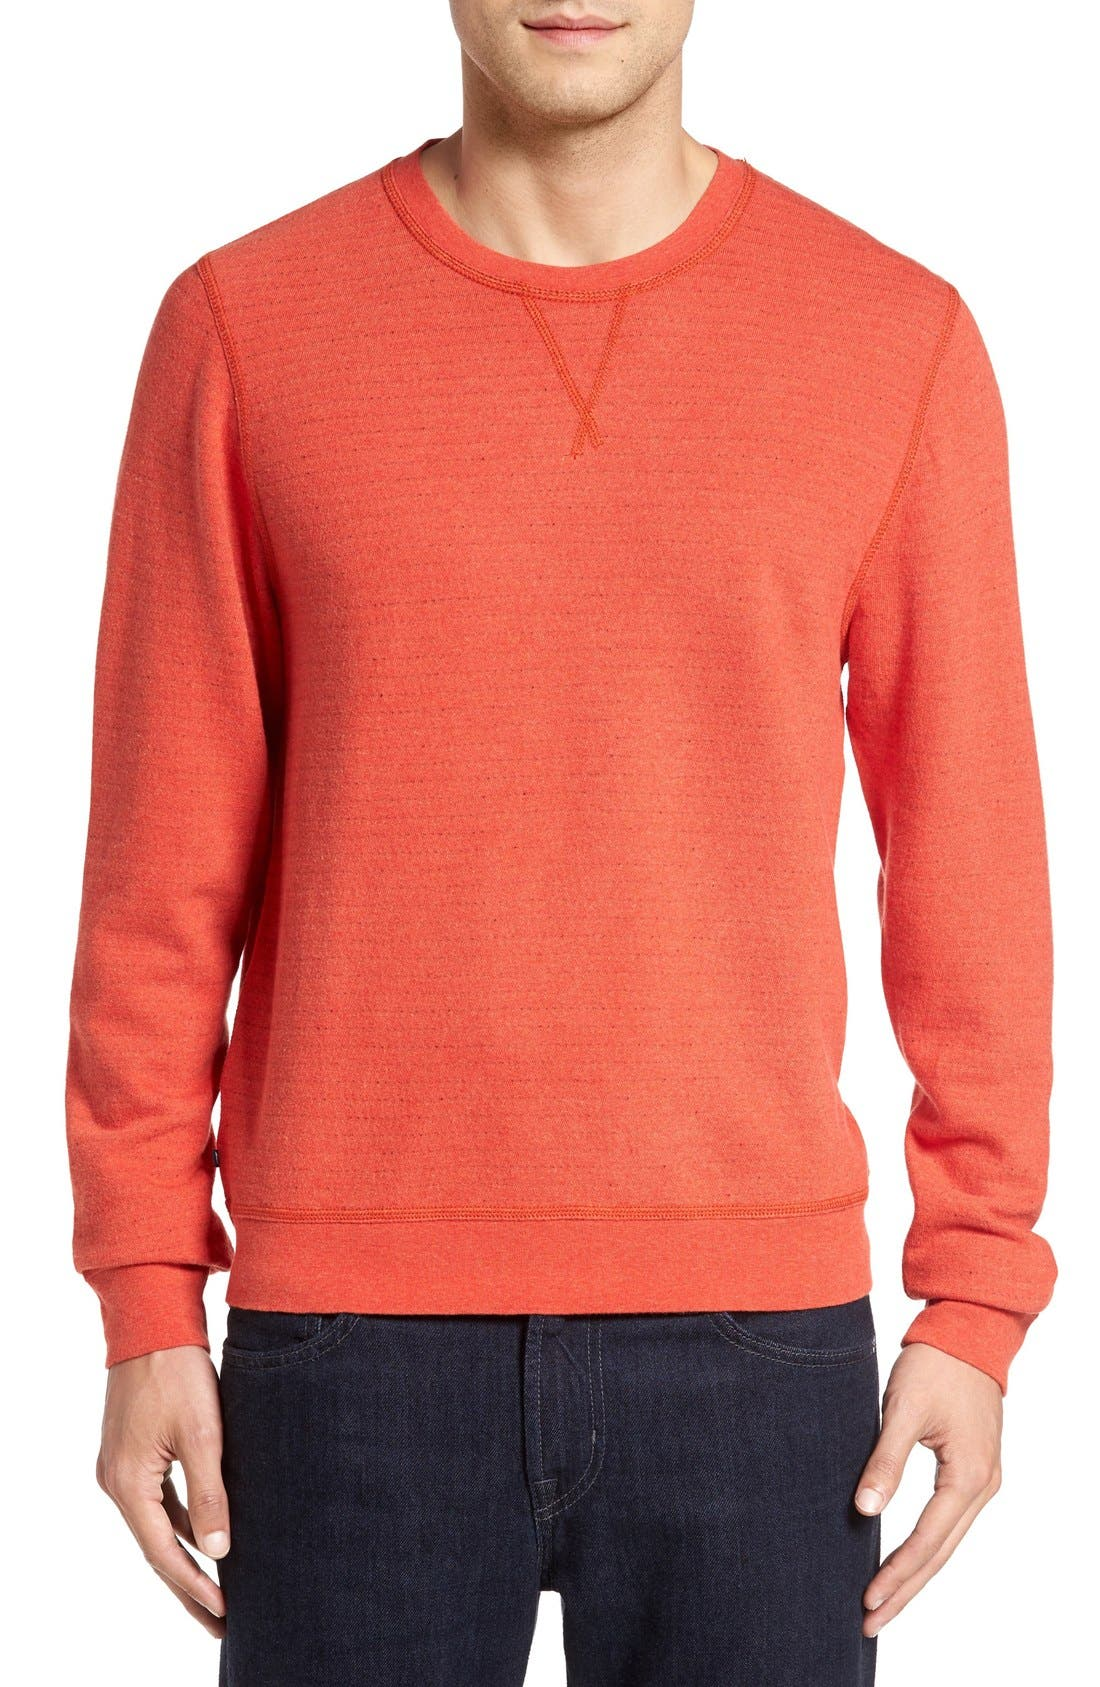 'Gleann' French Terry Crewneck Sweatshirt,                             Main thumbnail 1, color,                             Tangine Heather